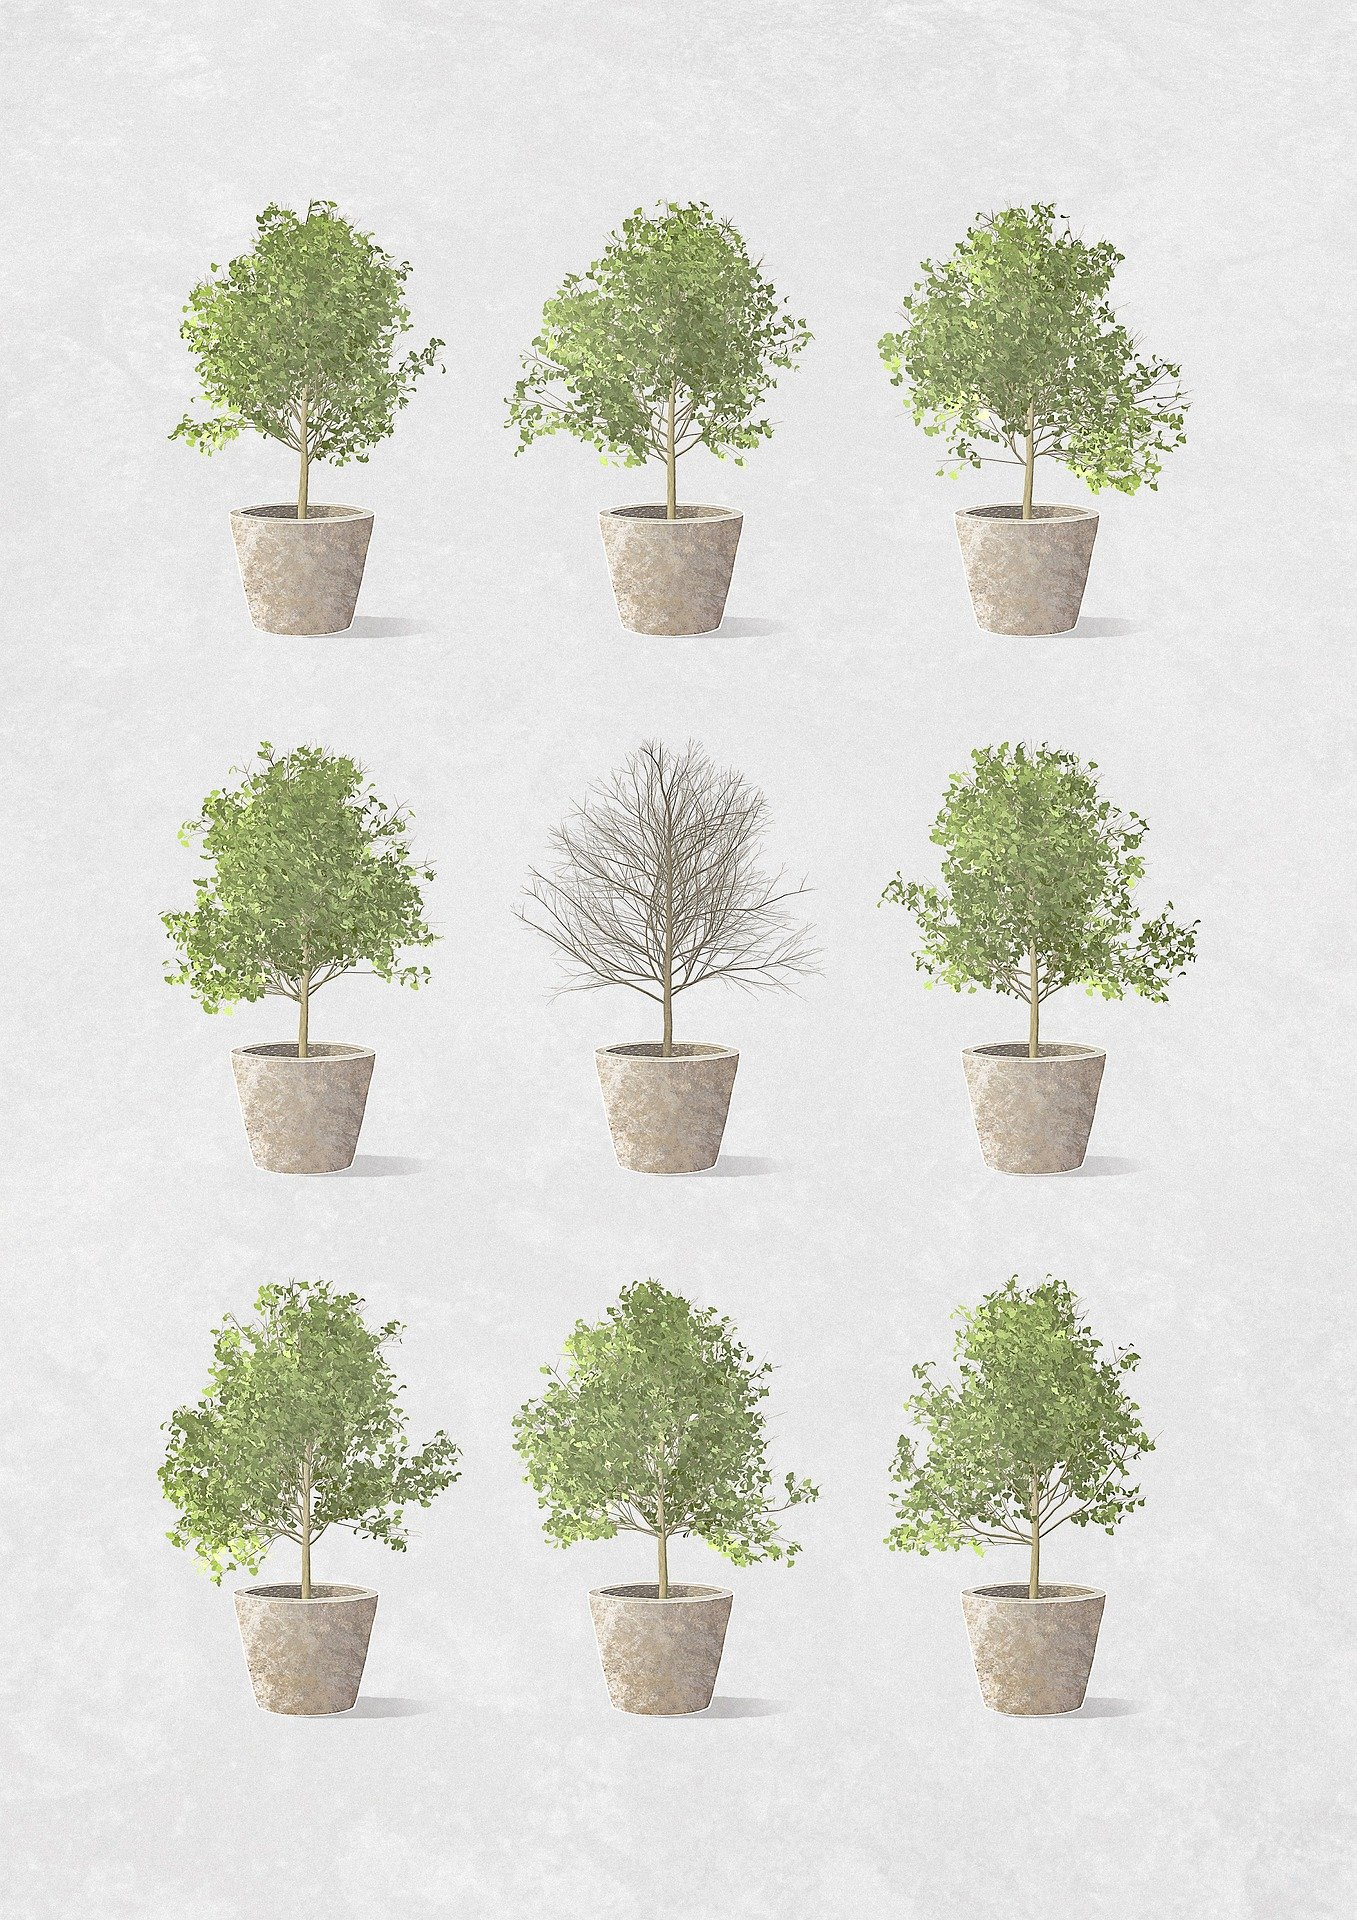 creativity plants 1357x1920 - Free image bank